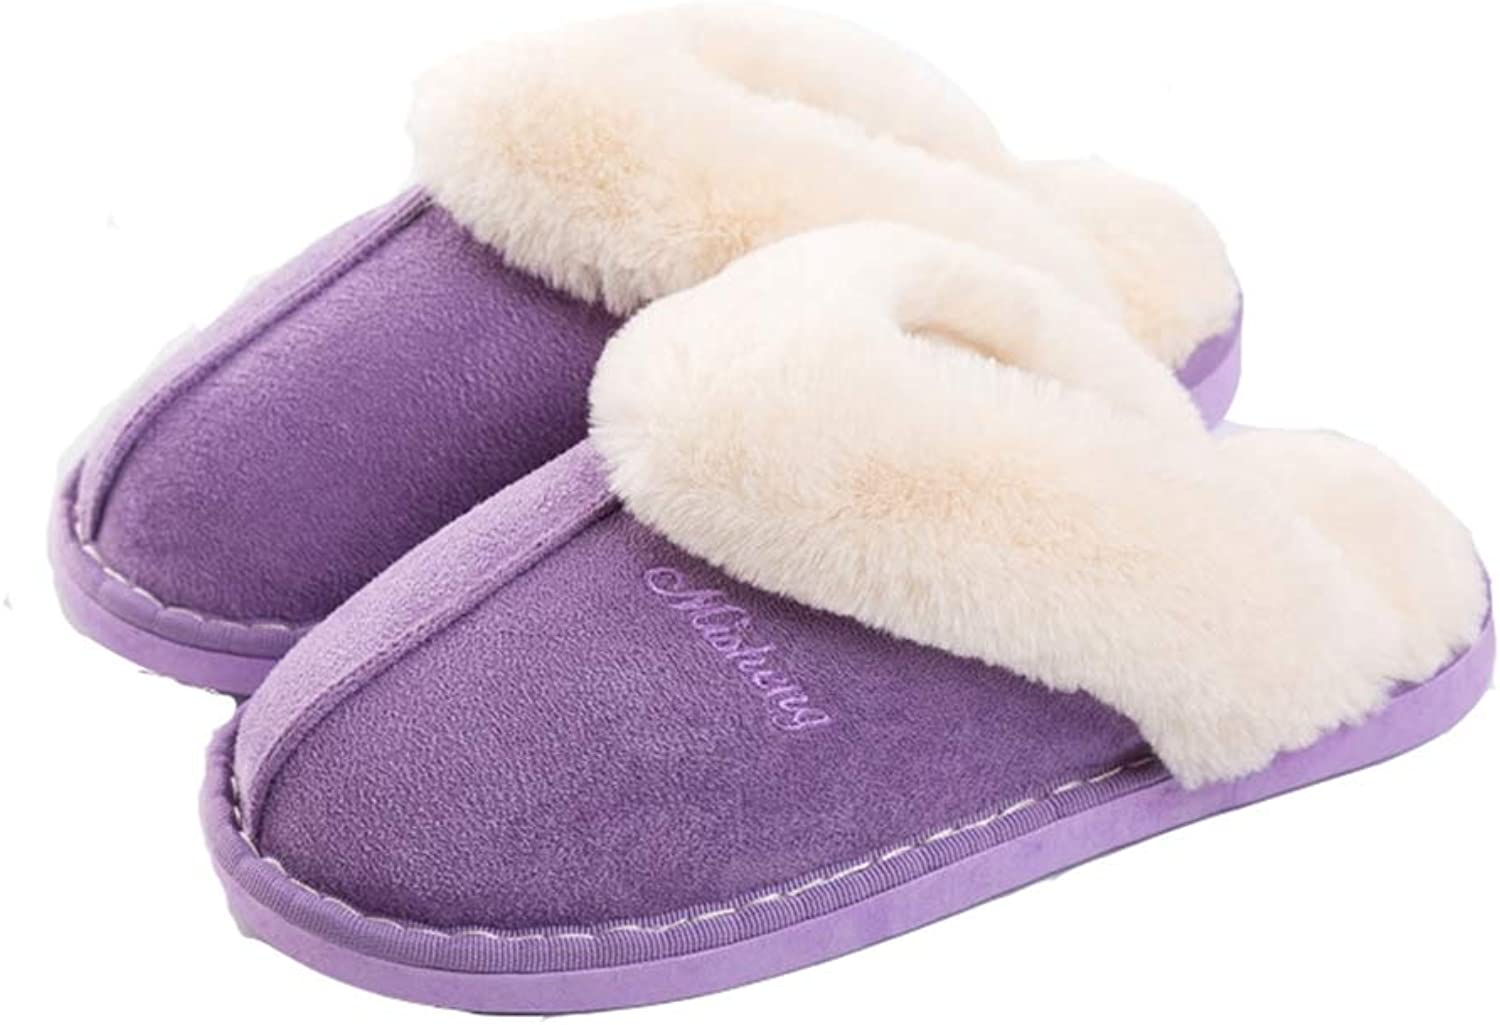 T-JULY Women's Fluffy Slip-On Home Slipper Memory Foam Suede Fur Lined Winter Non-Slip Sole Indoor & Outdoor